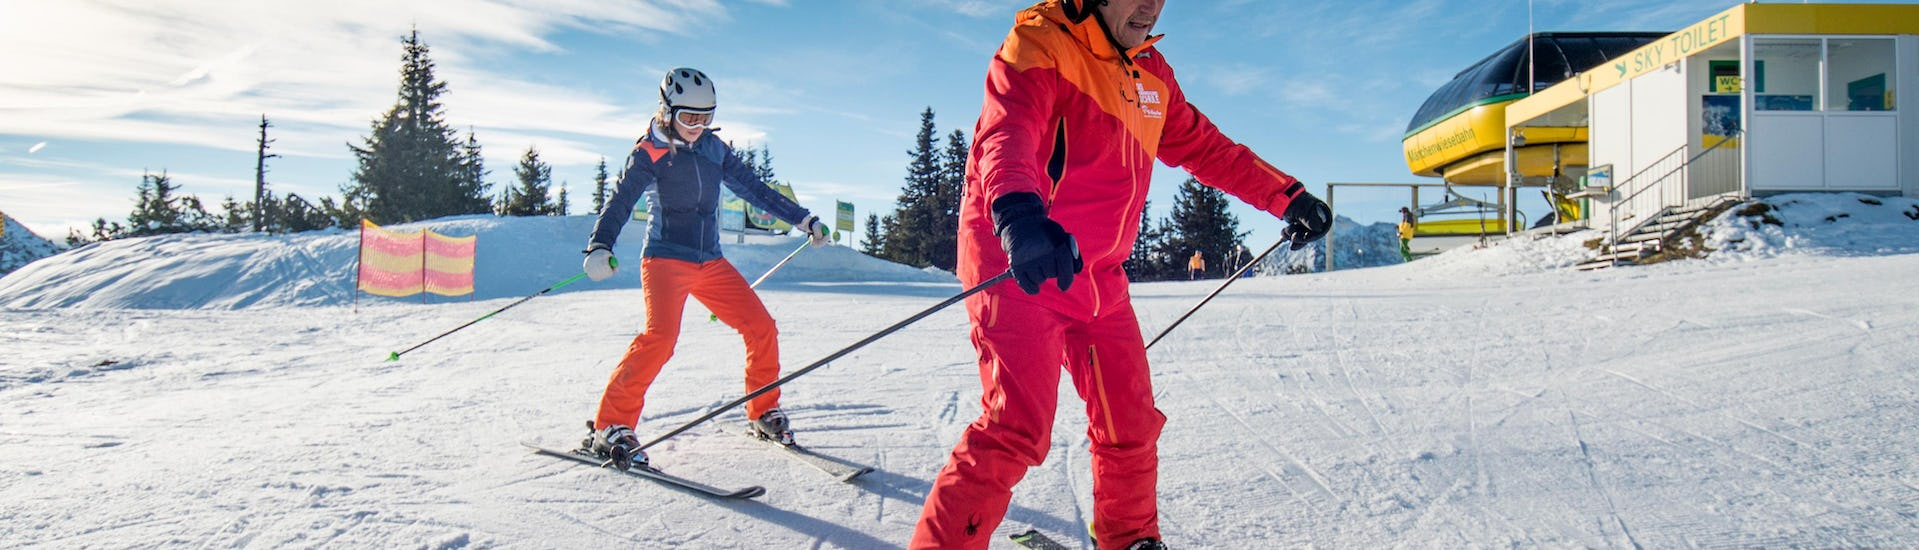 Ski Lessons Adults - Planai - First timer